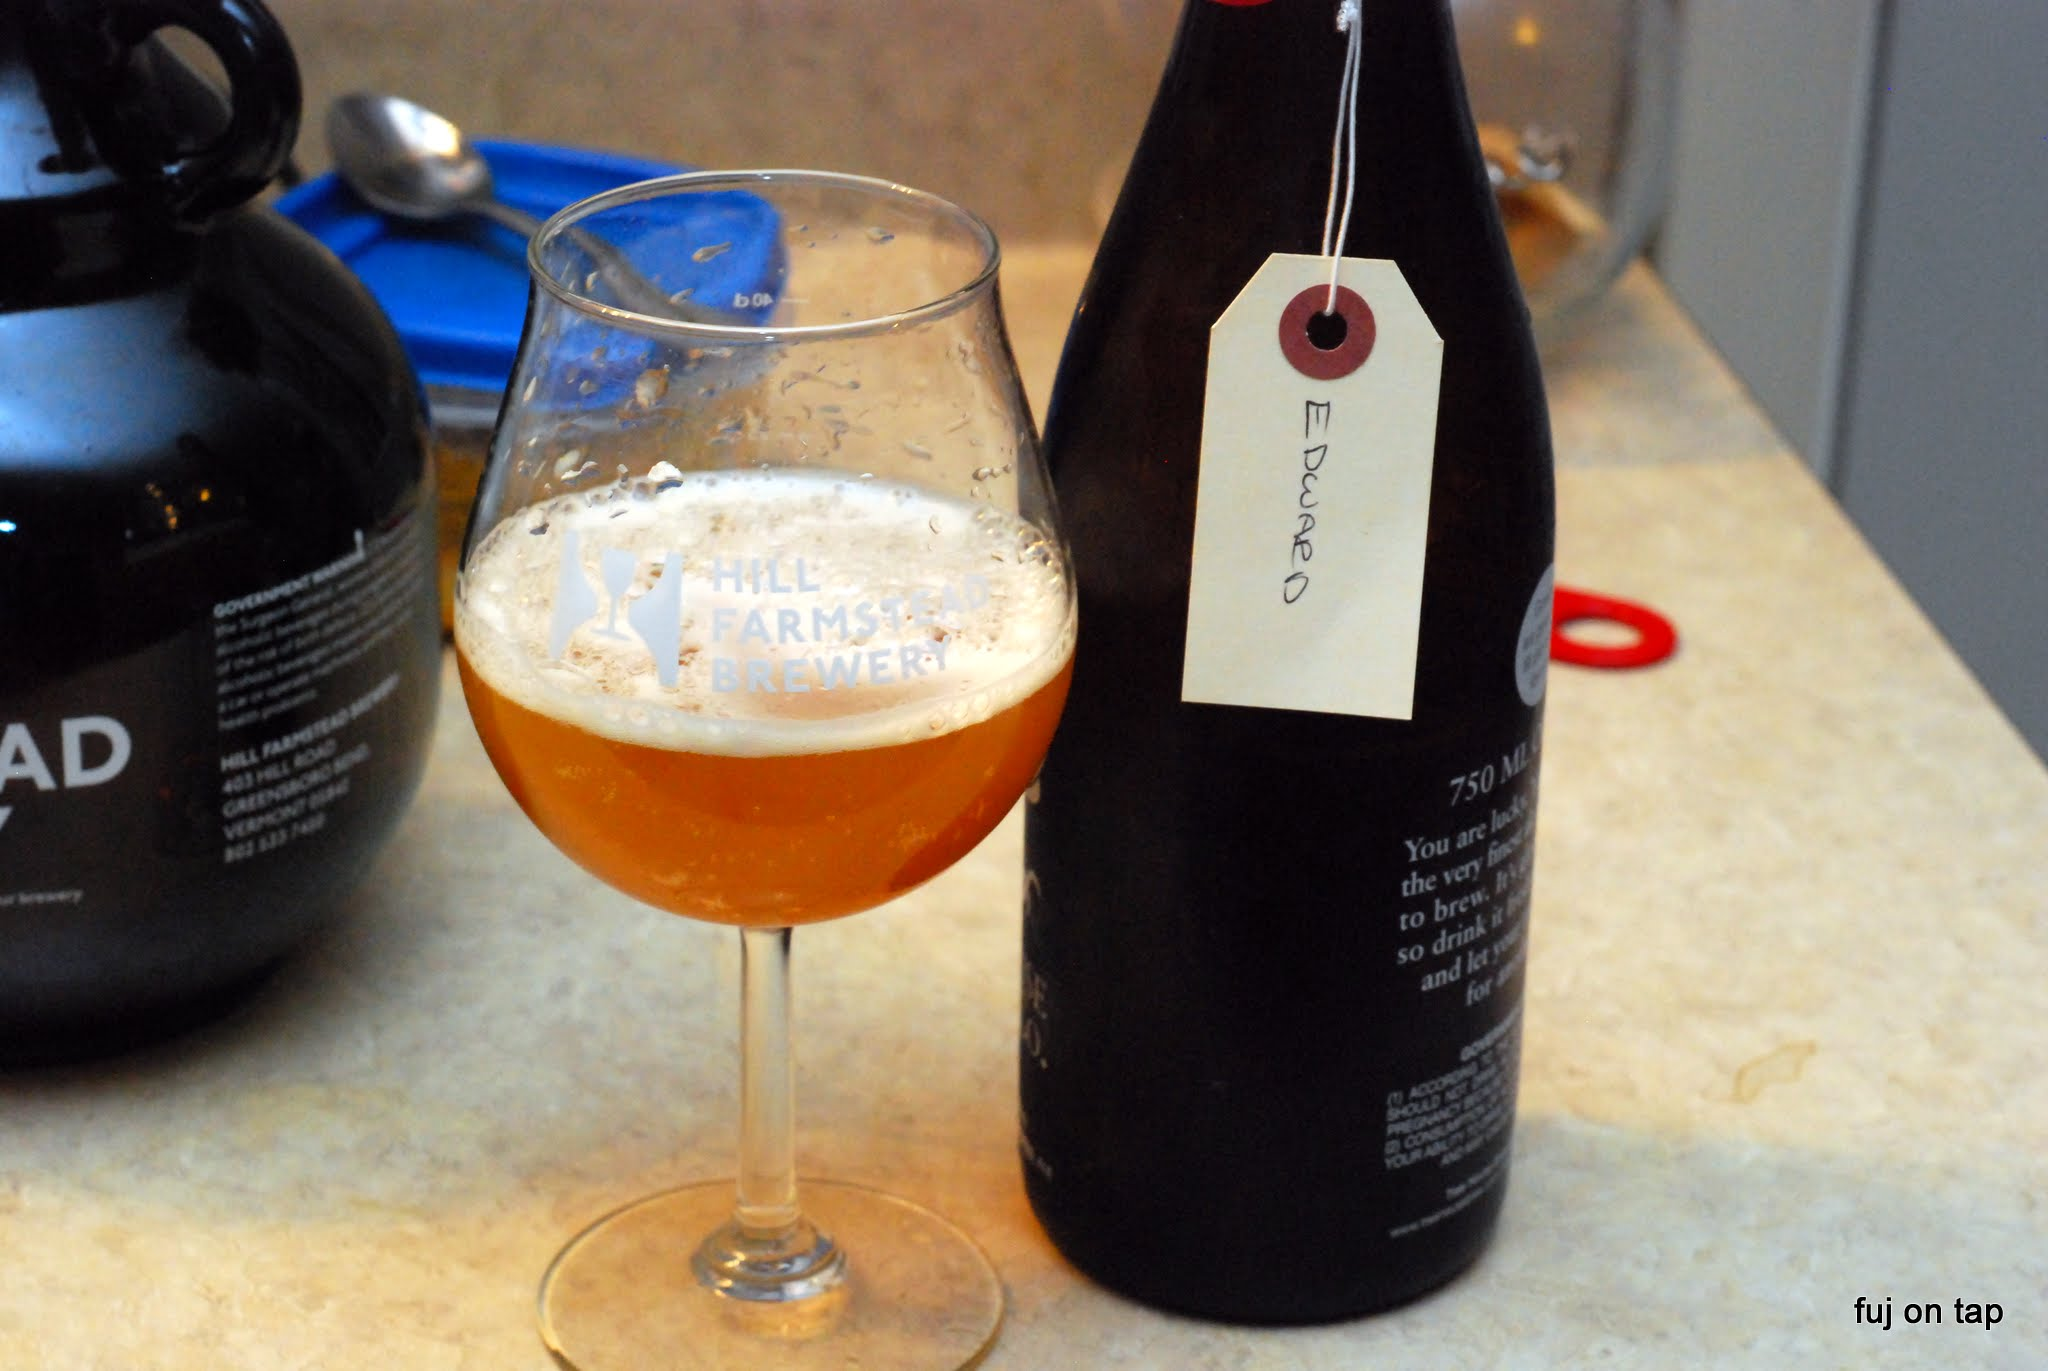 Hill Farmstead Edward